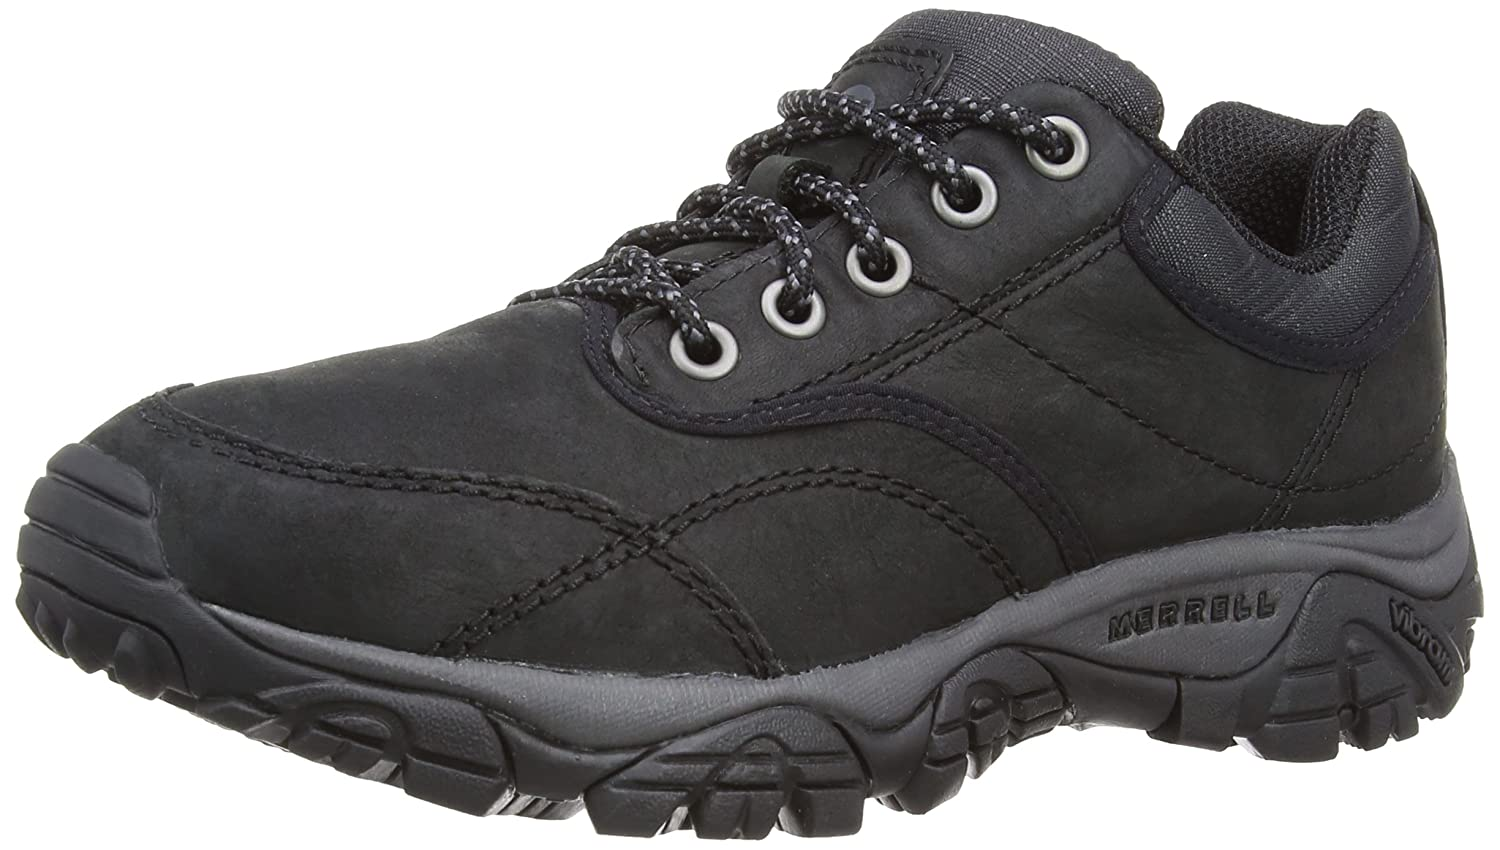 Amazon.com | Merell Men's Moab Rover Hiking Shoes, Durable and Comfortable  in Sophisticated Leather Upper and Abrasion Resistant Fabric | Shoes